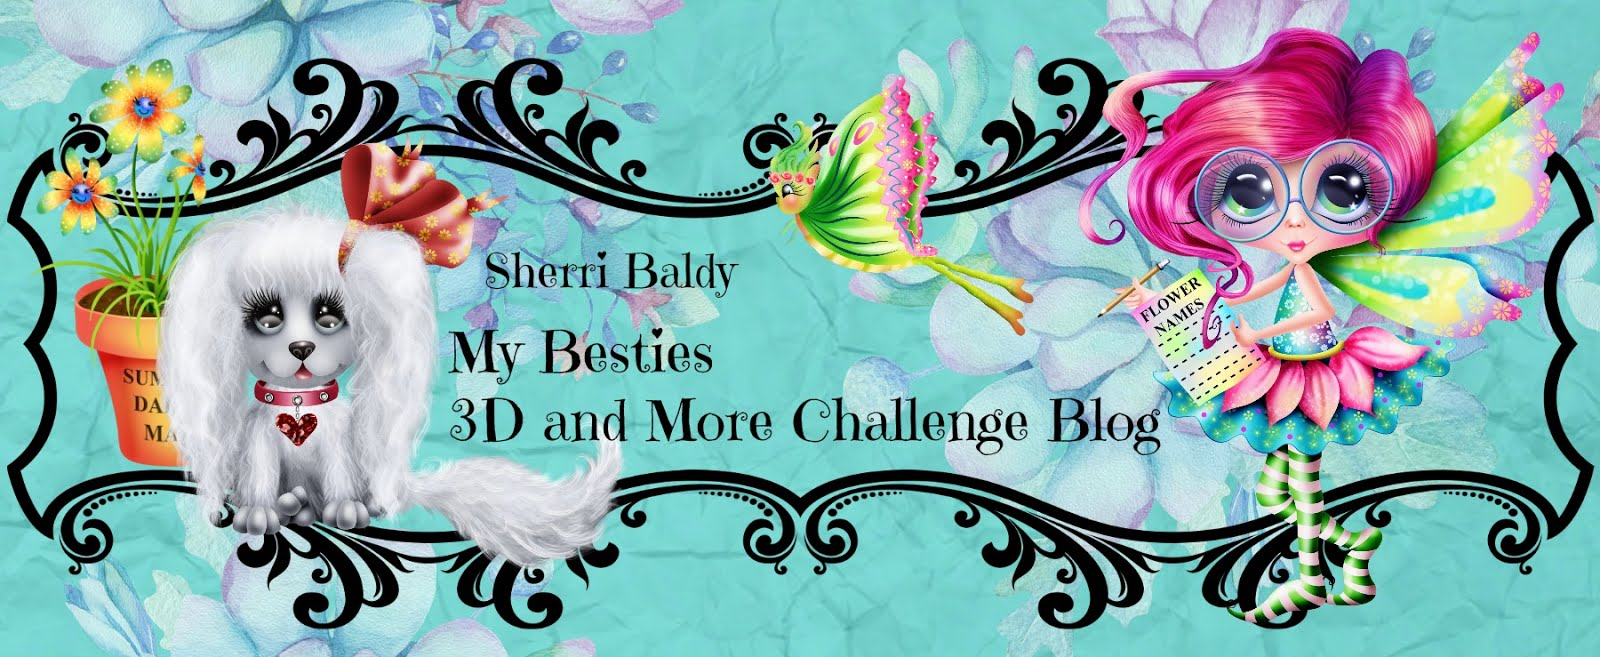 My Besties 3D and More Challenge - Click the photo to visit us!